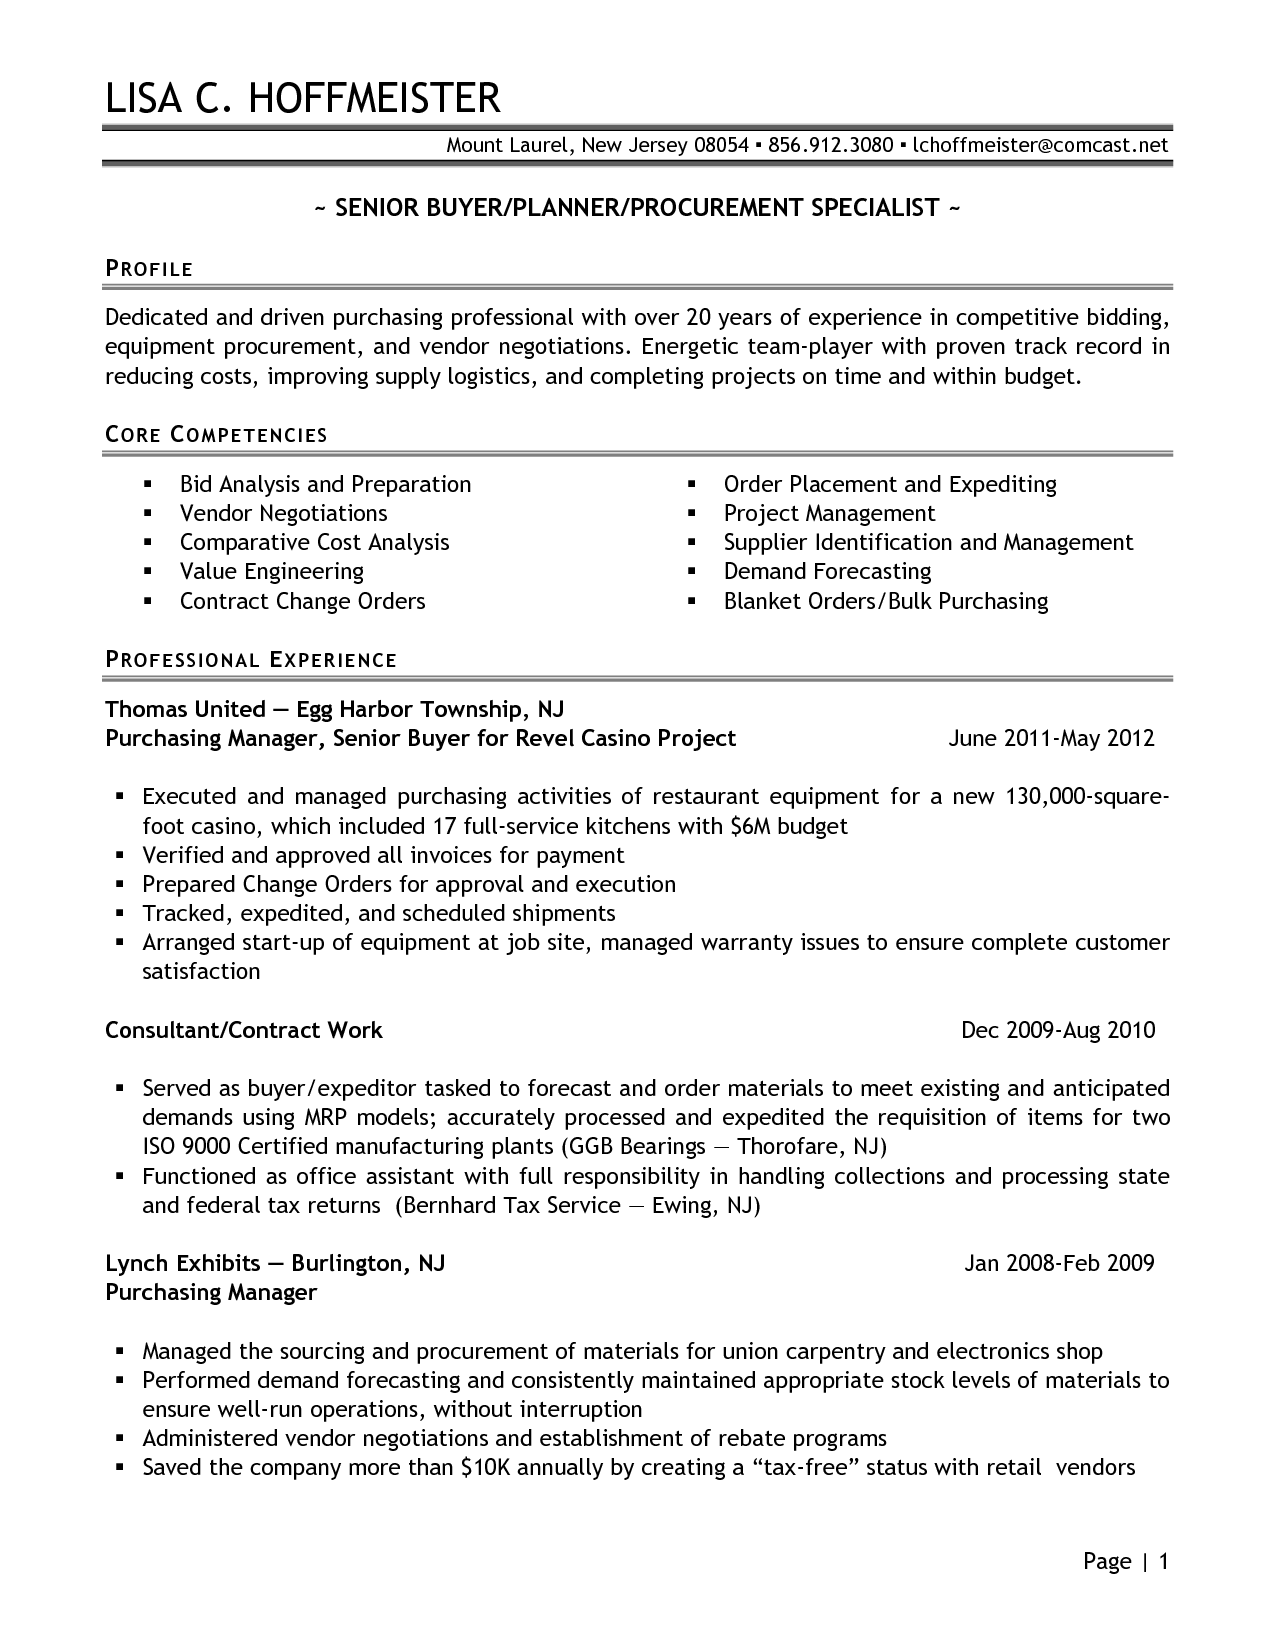 Senior Logistic Management Resume Senior Buyer Purchasing